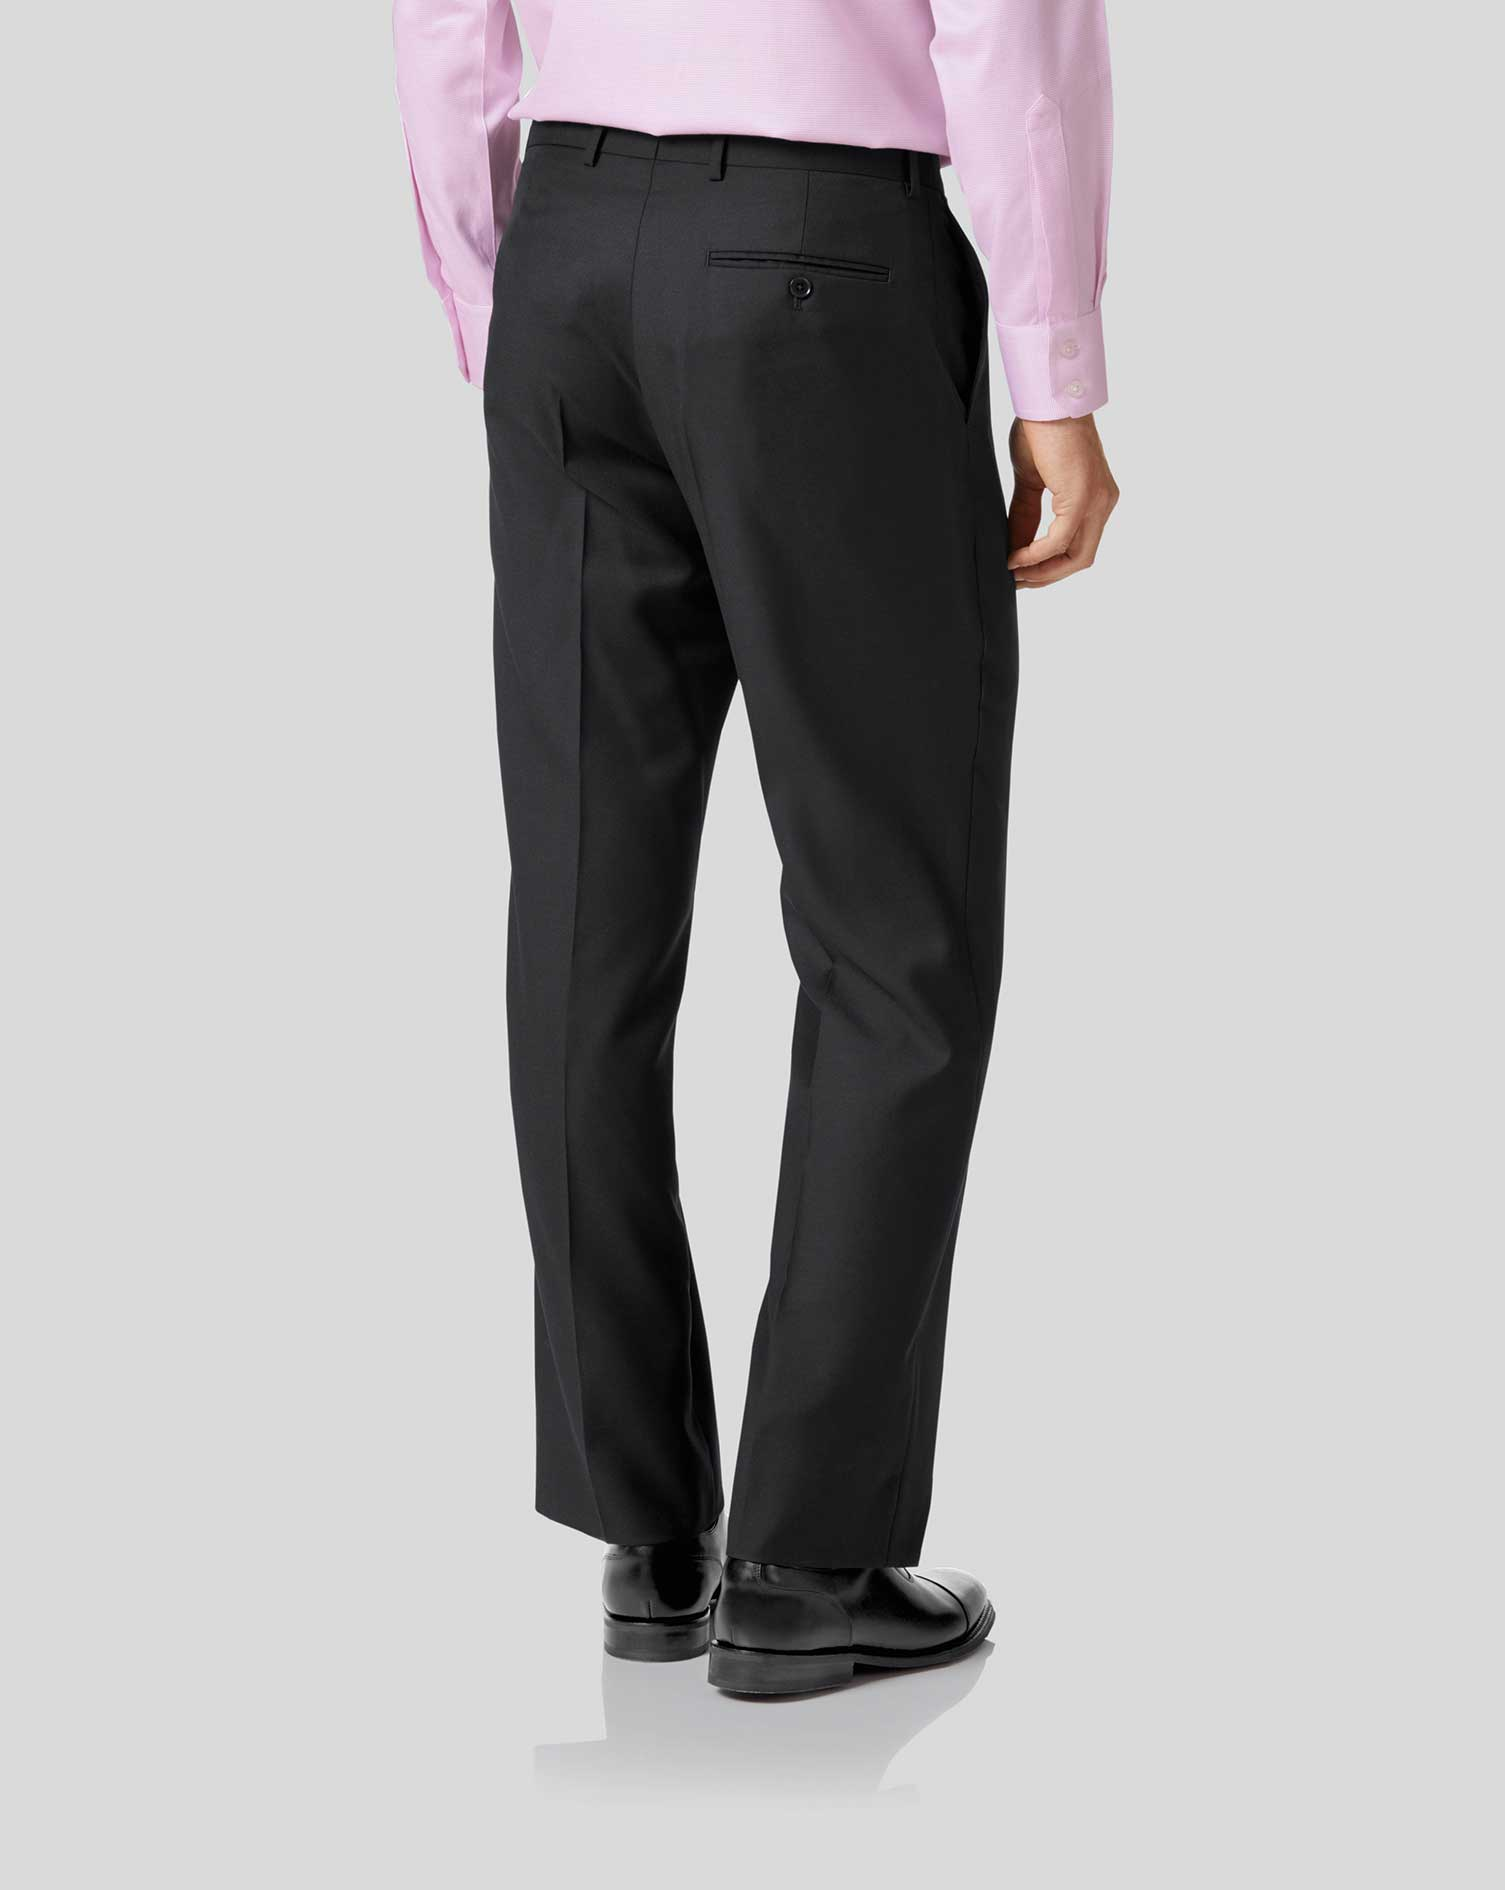 Black classic fit twill business suit pants